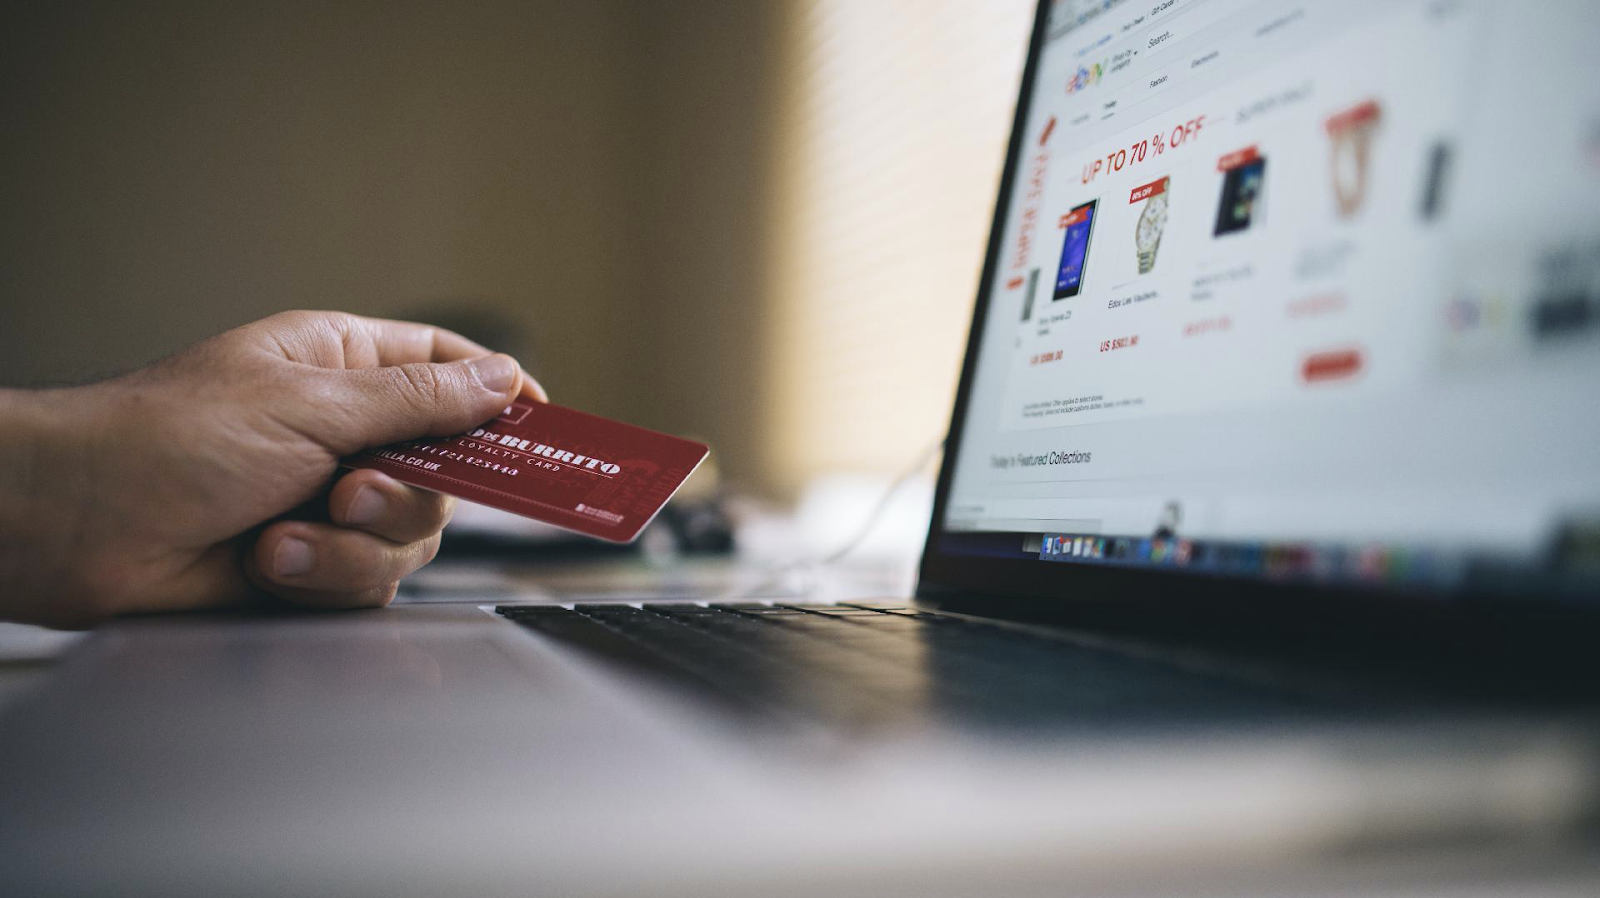 Hand holding credit card in front of a laptop doing some purchases in online shopping.